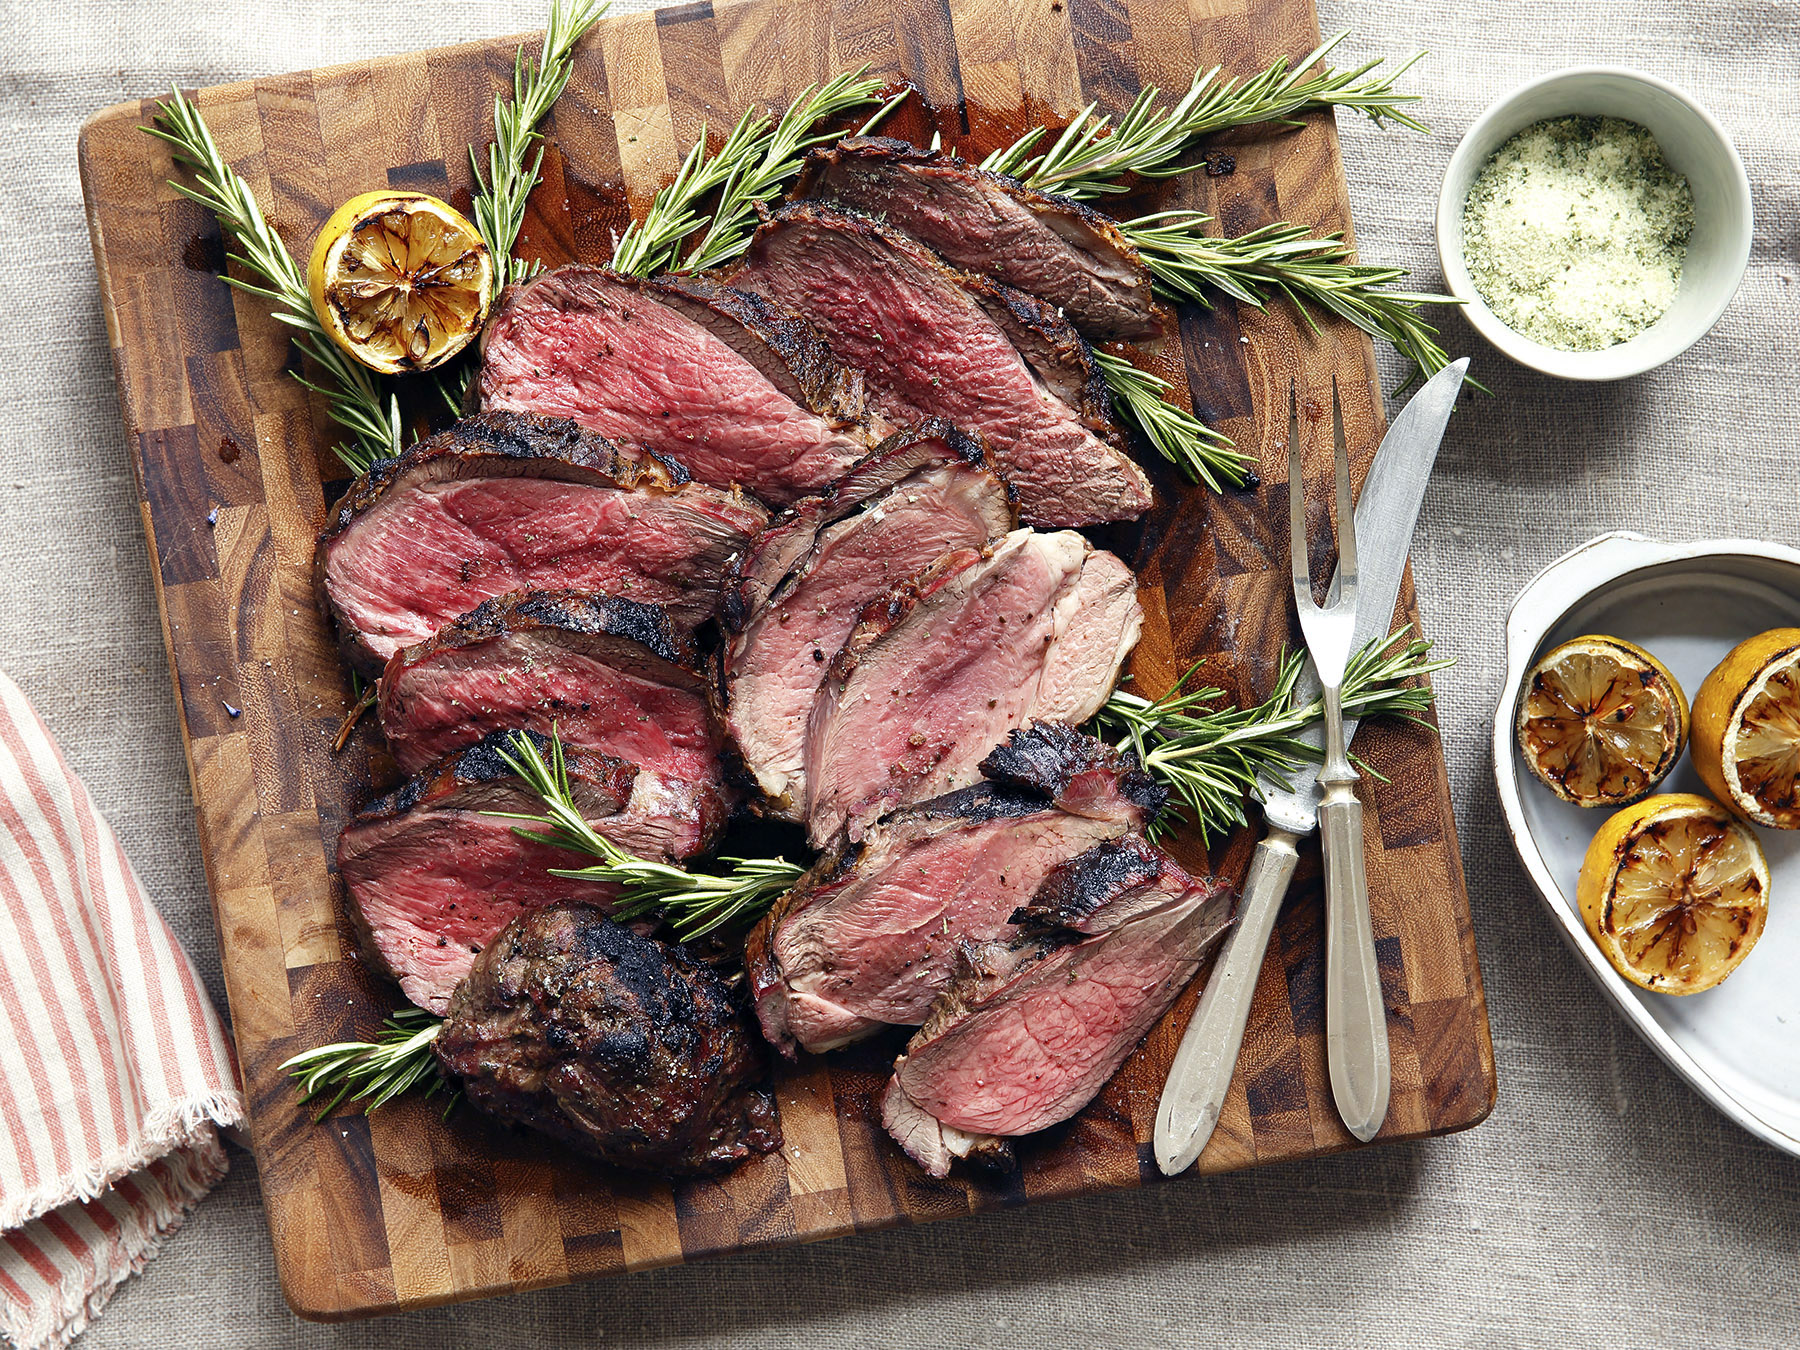 Ready in under an hour, this Butterflied Leg of Lamb is generously seasoned with a homemaderosemary sea salt and served with a charred lemon for squeezing.